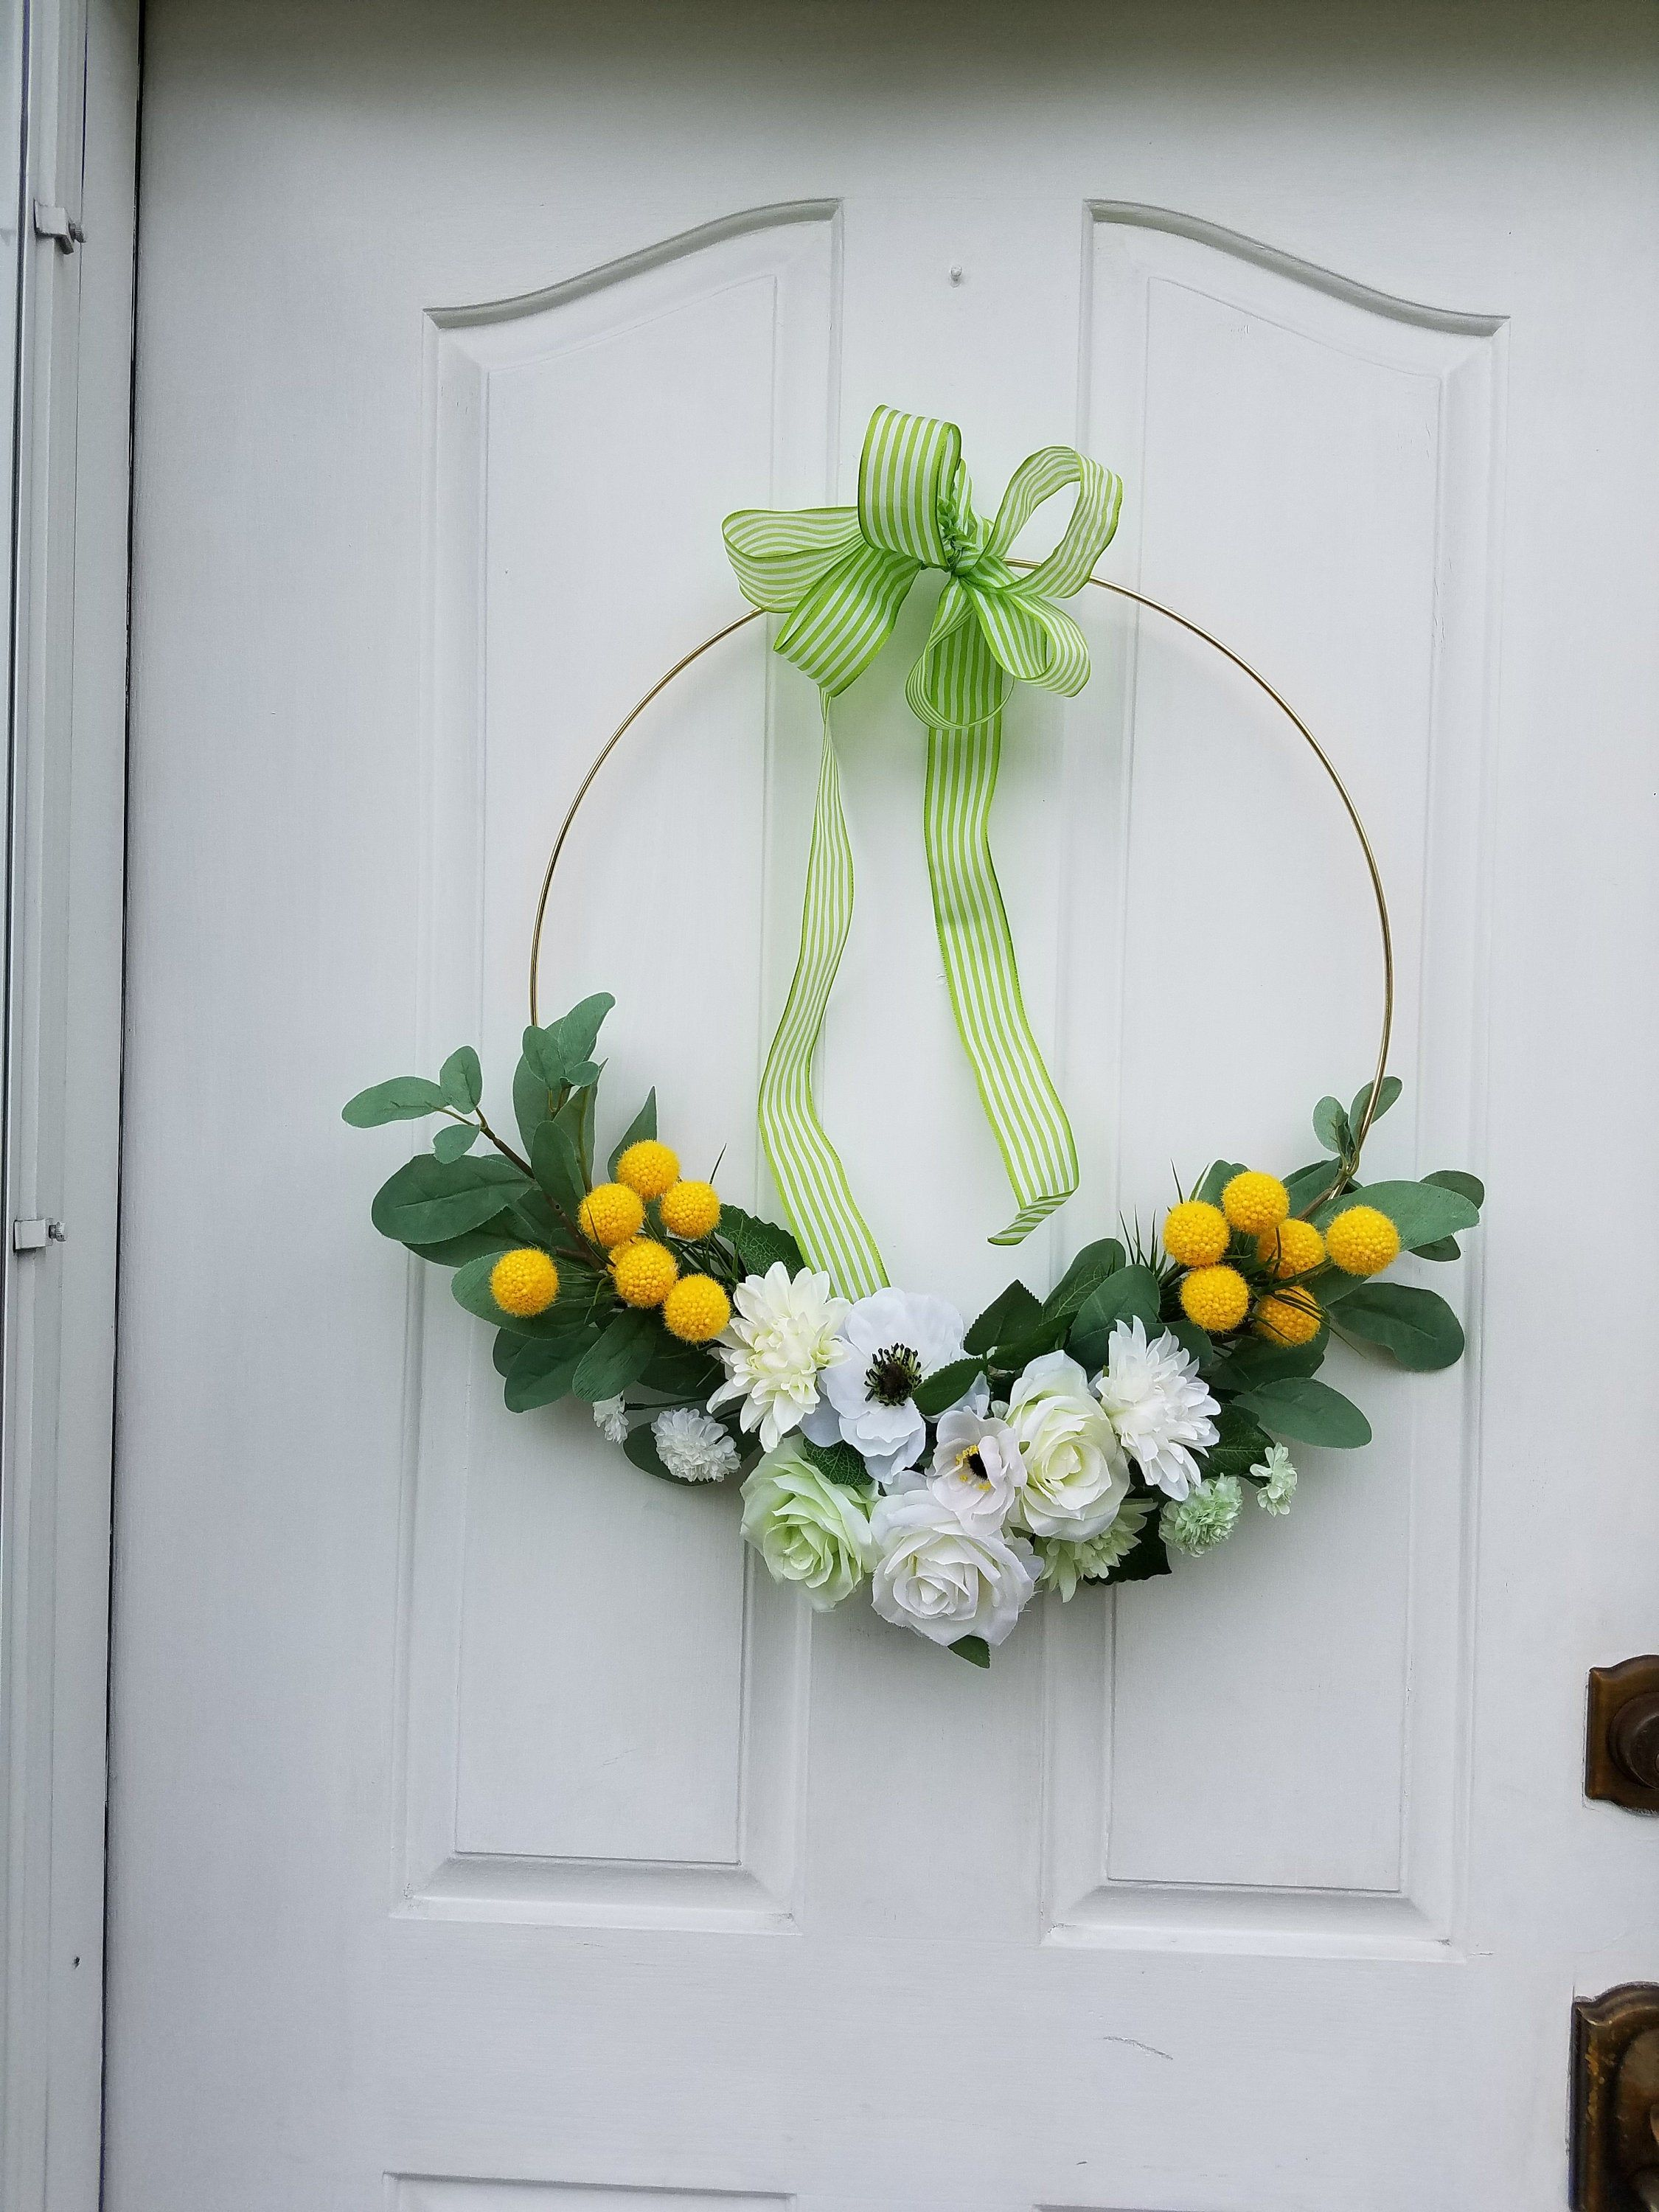 Modern Hoop Wreath Floral Wreath For Front Door 22 Inch Hoop Etsy In 2020 Winter Door Decorations Summer Door Wreaths Wreaths For Front Door